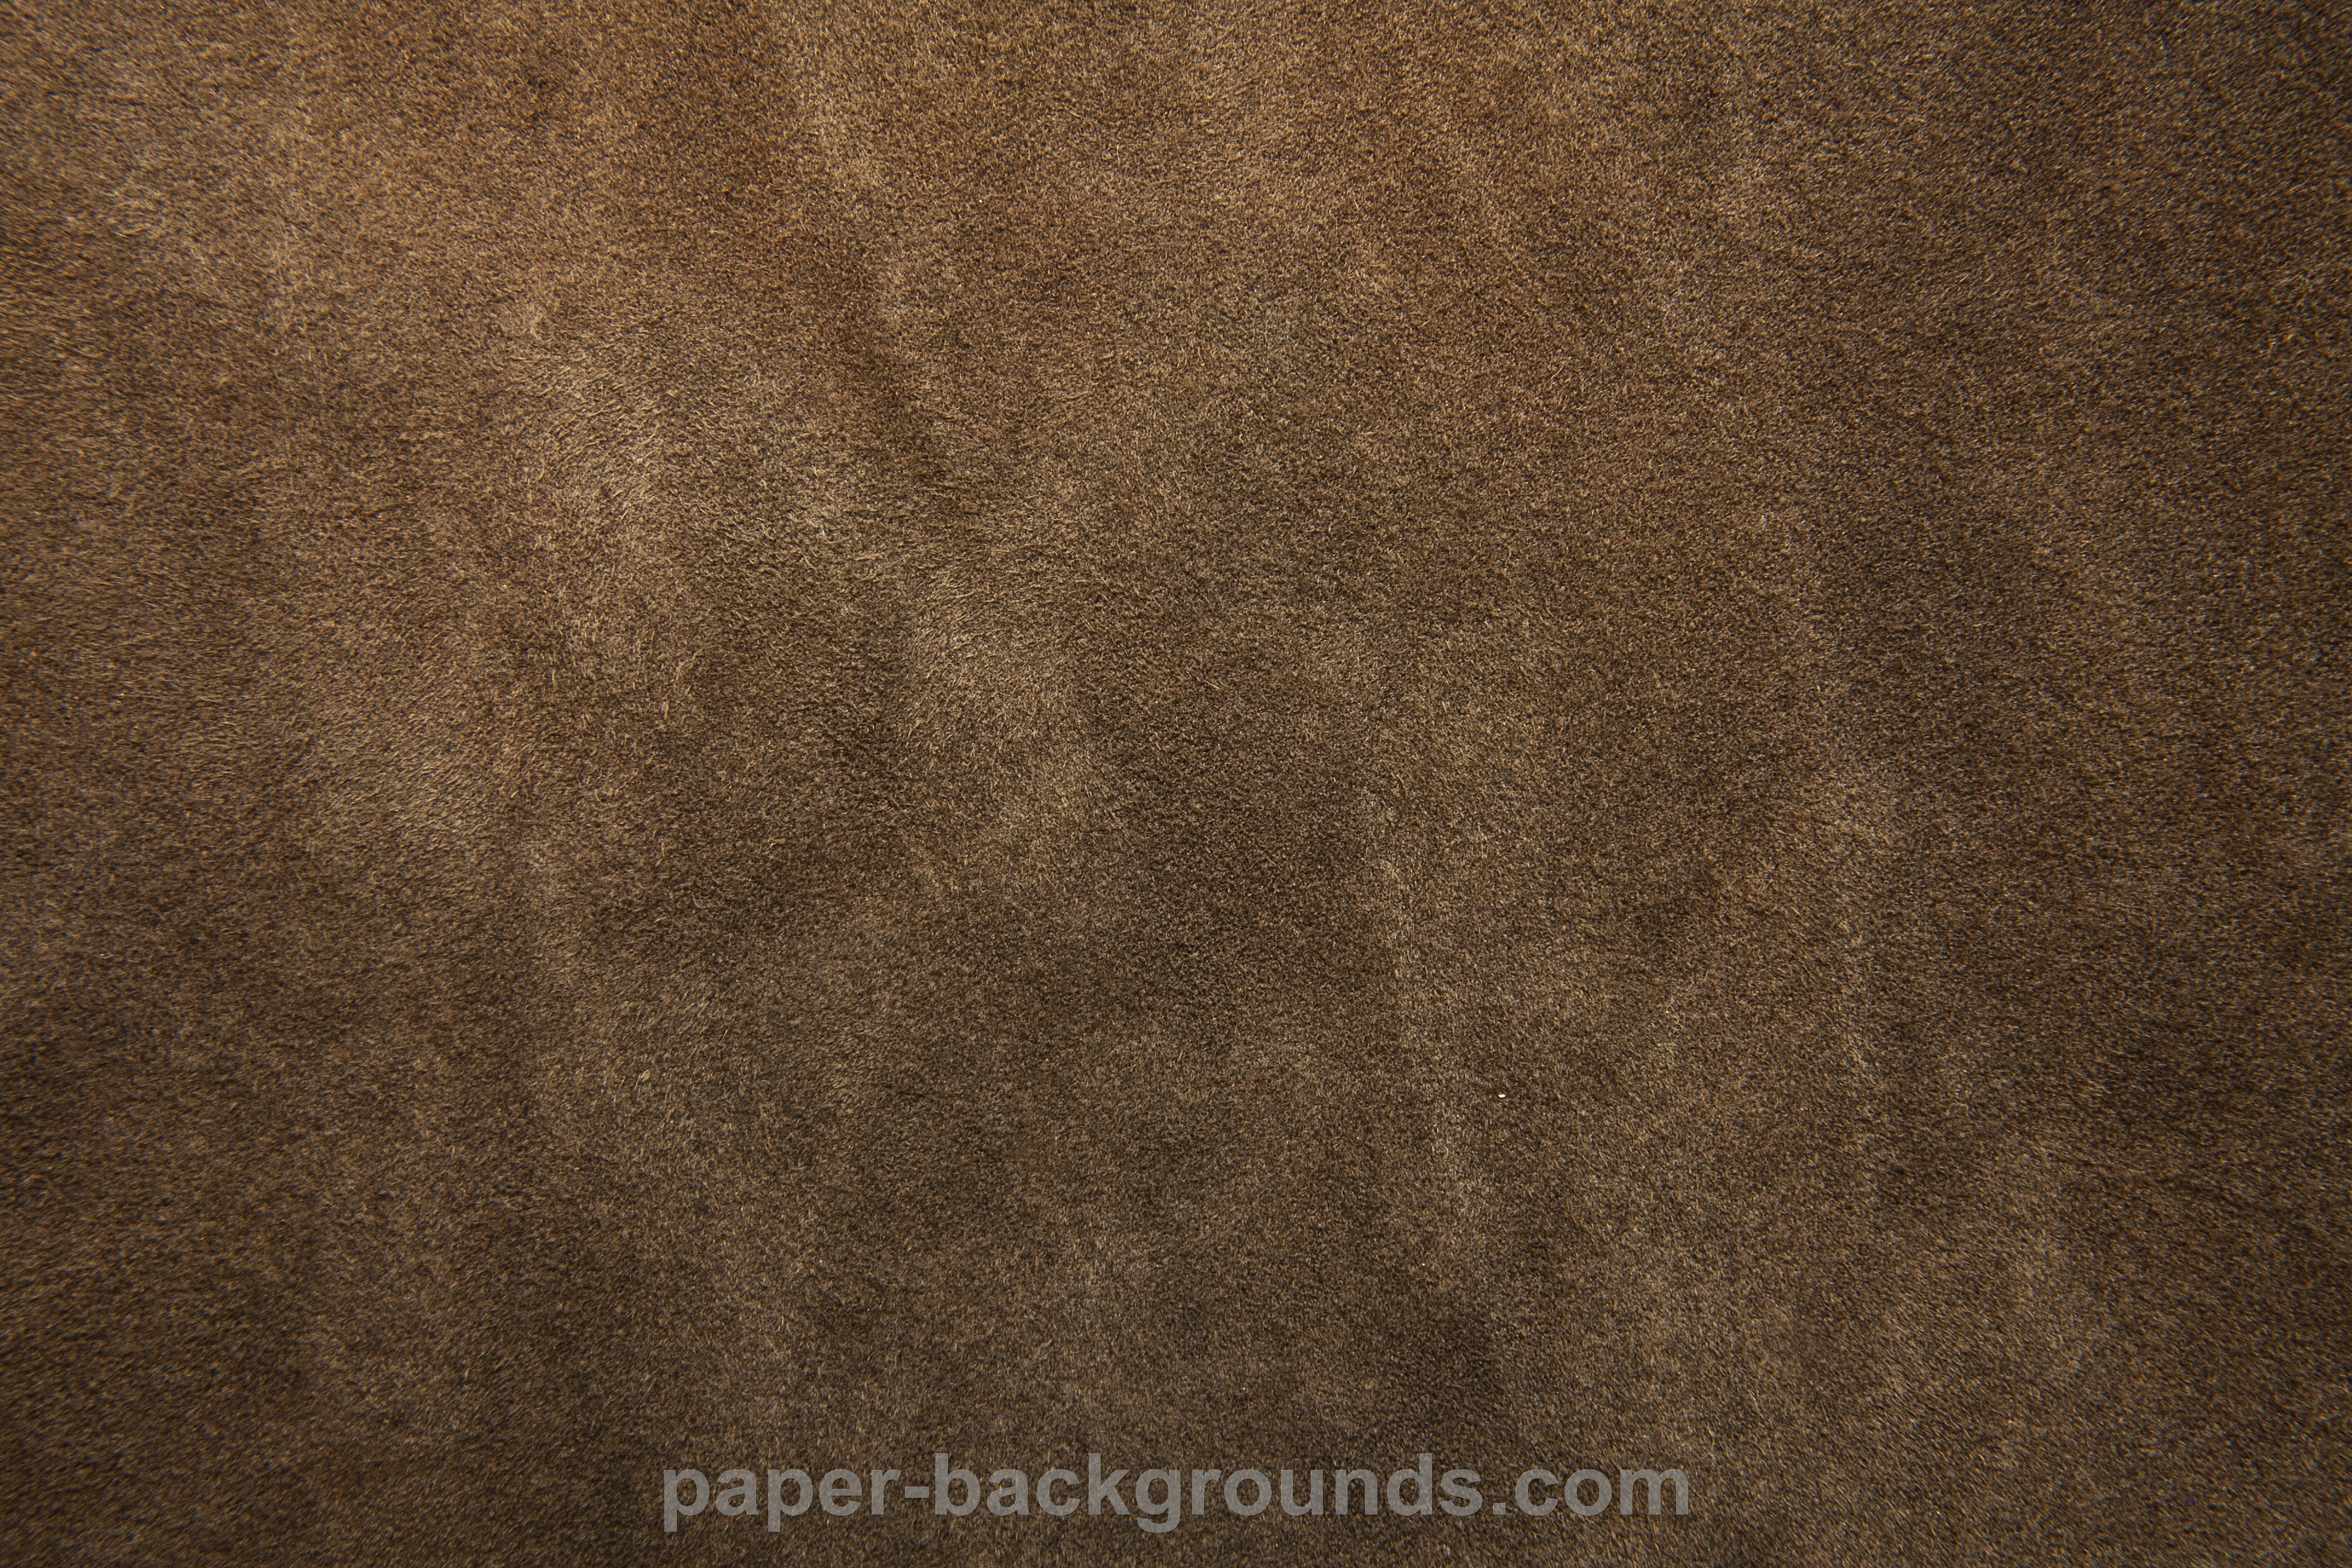 Brown Seamless Fabric Textures Paper Backgrounds Brown Leather Texture Background